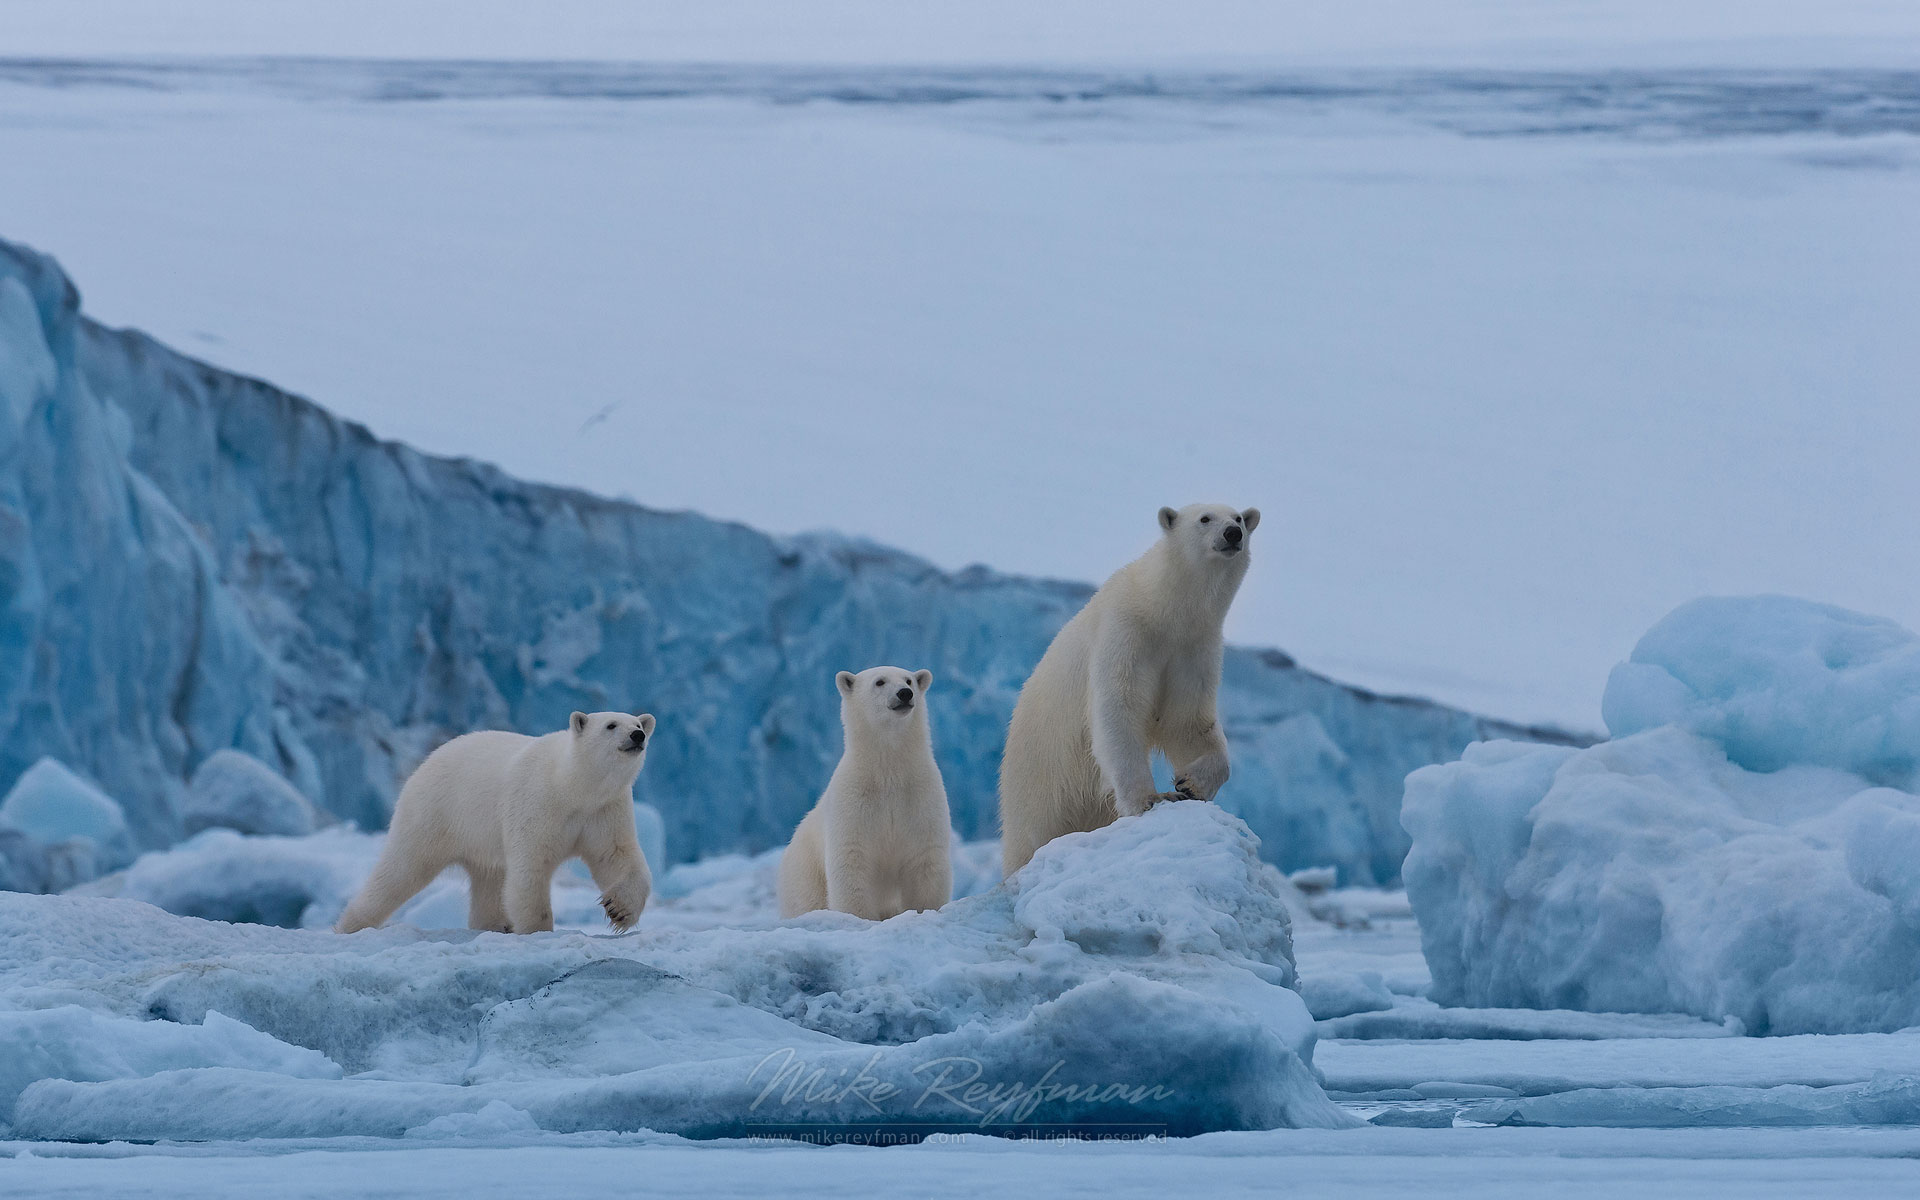 Female polar bear with twin cubs on the pack ice along Spitsbergen coast. Svalbard, Norway. - Polar-Bears-Svalbard-Spitsbergen-Norway - Mike Reyfman Photography